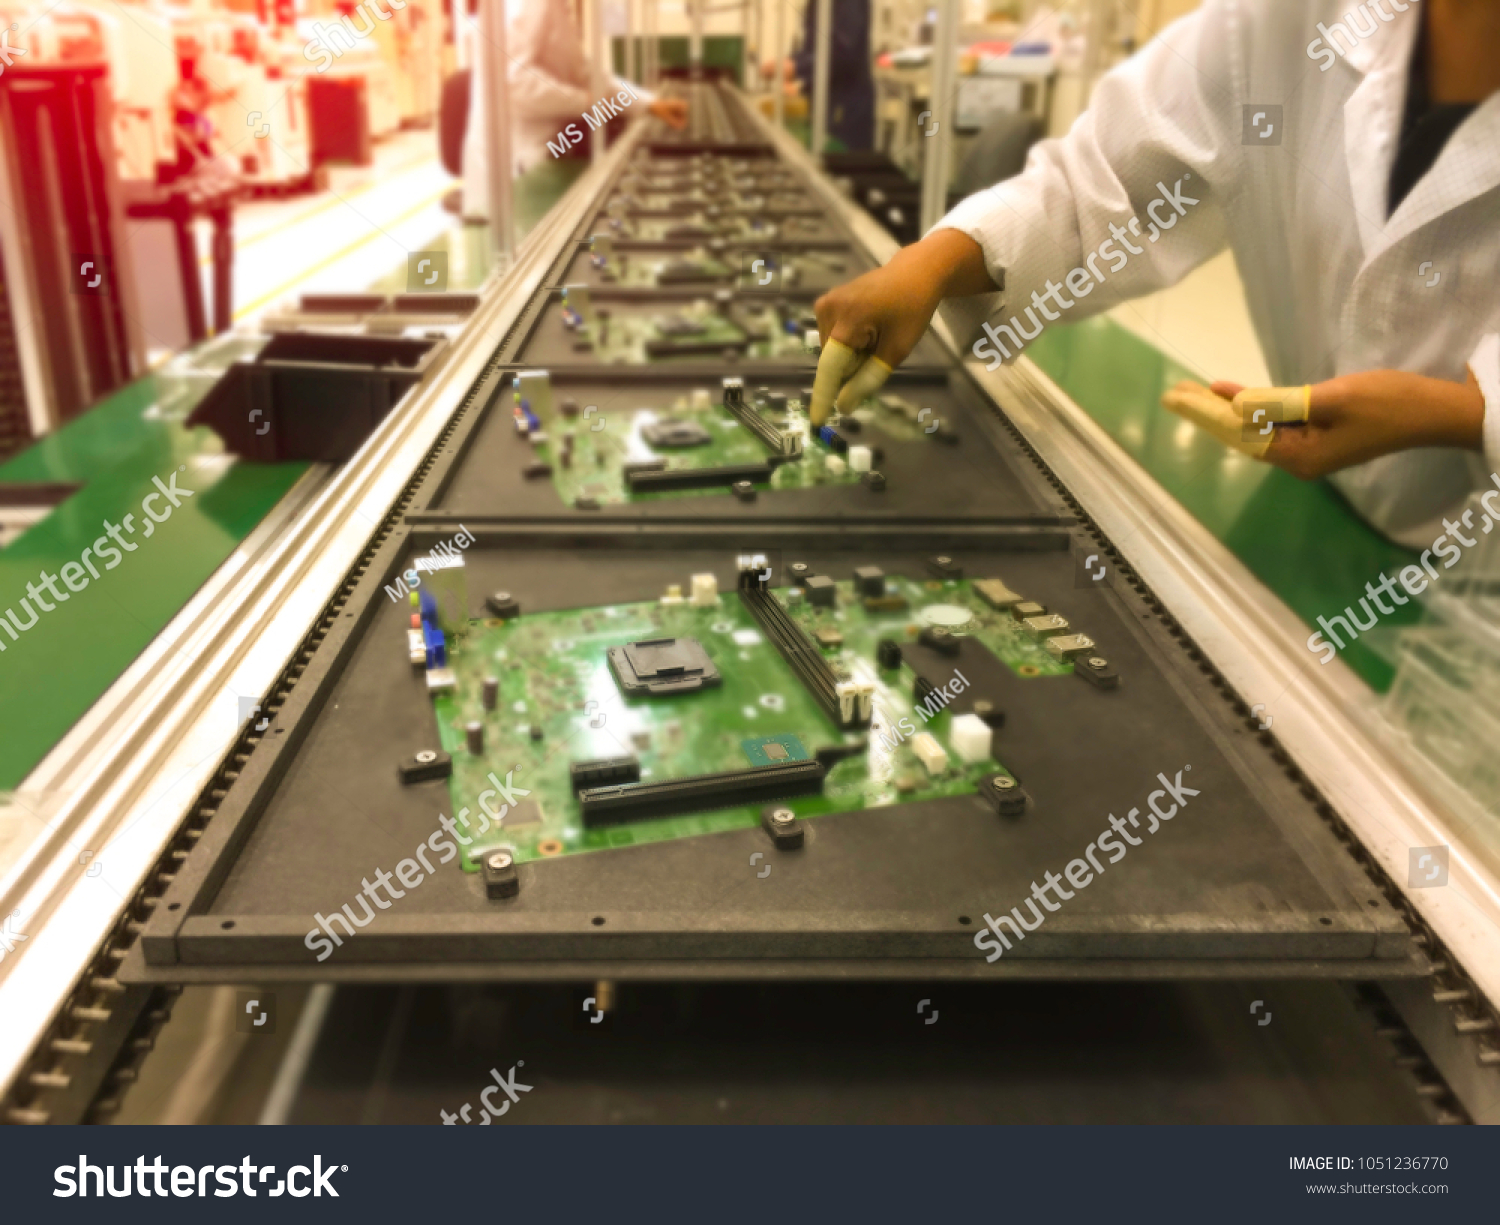 Image Not Clear Electronics Manufacturing Manual Stock Photo Edit Printed Circuit Board Printer Of Insertion Electronic Components On Printing Assembly